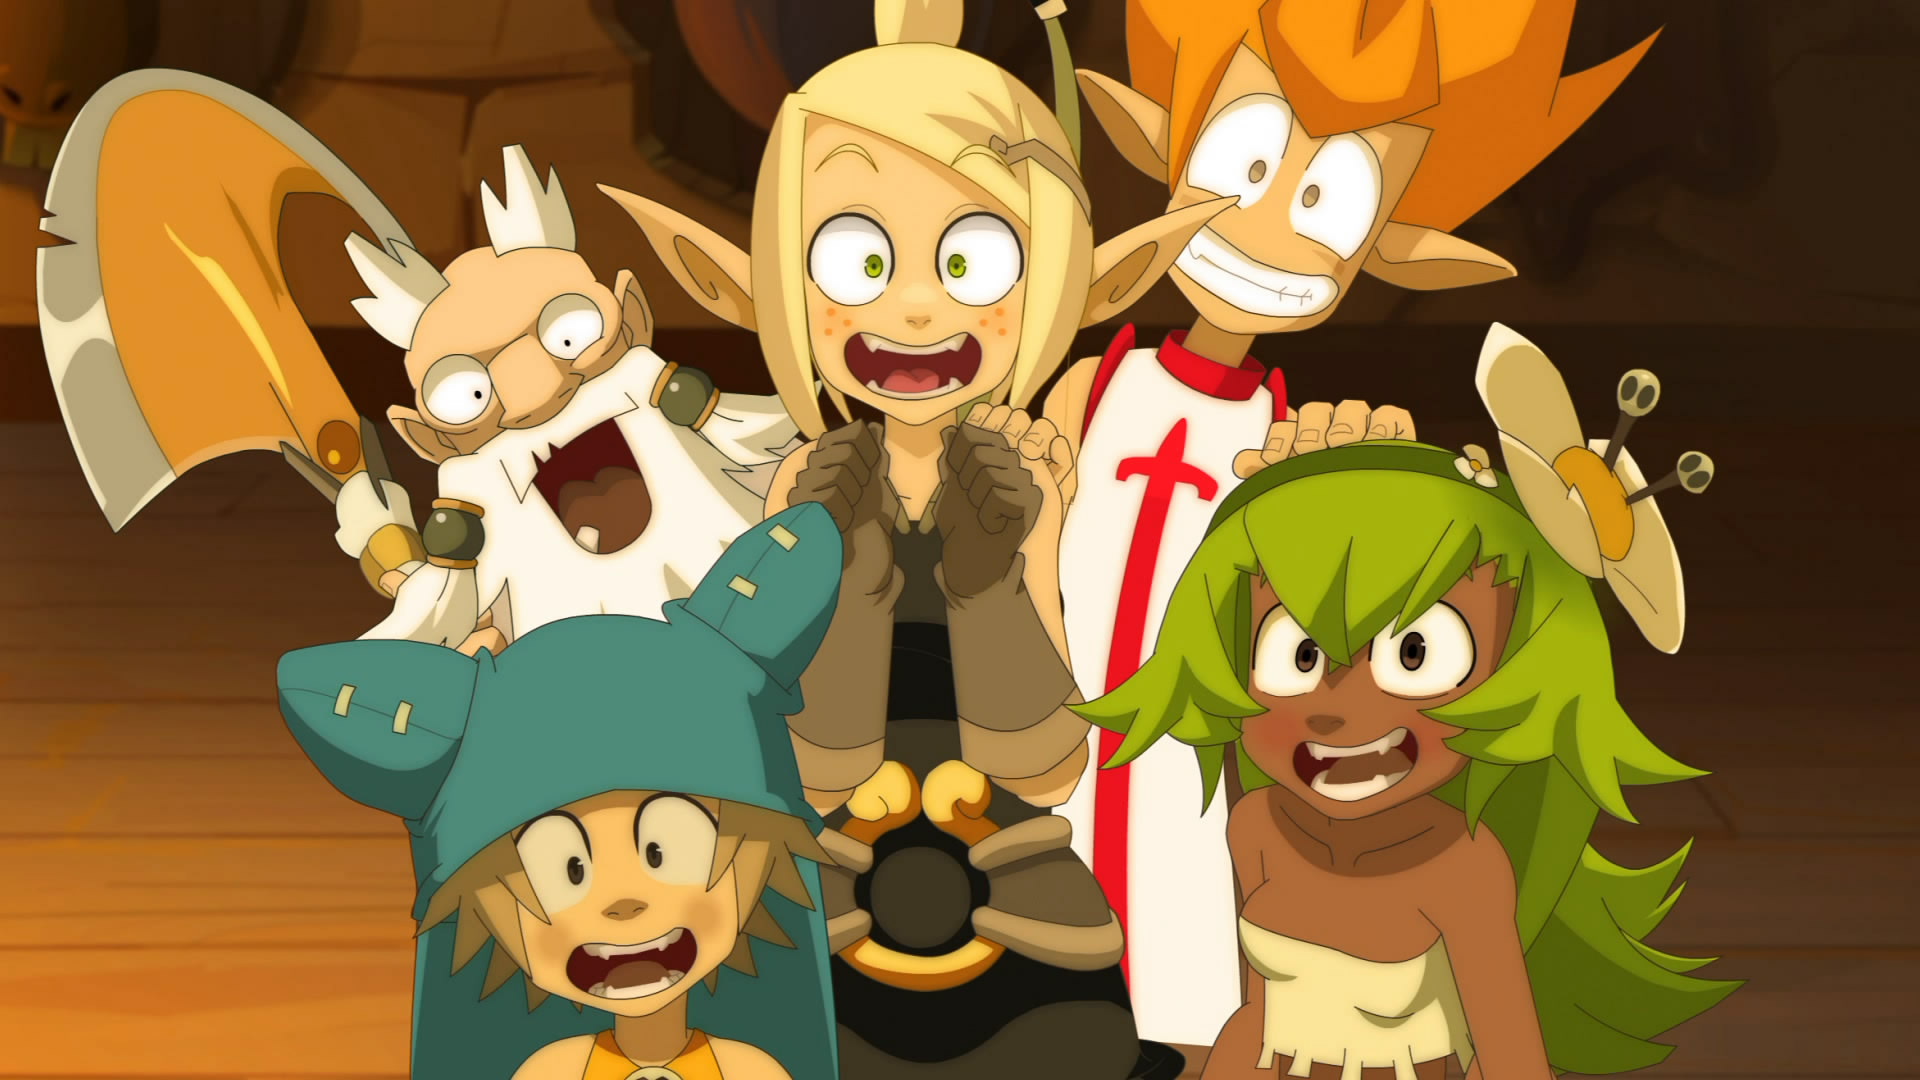 Wakfu Backgrounds, Compatible - PC, Mobile, Gadgets| 1920x1080 px